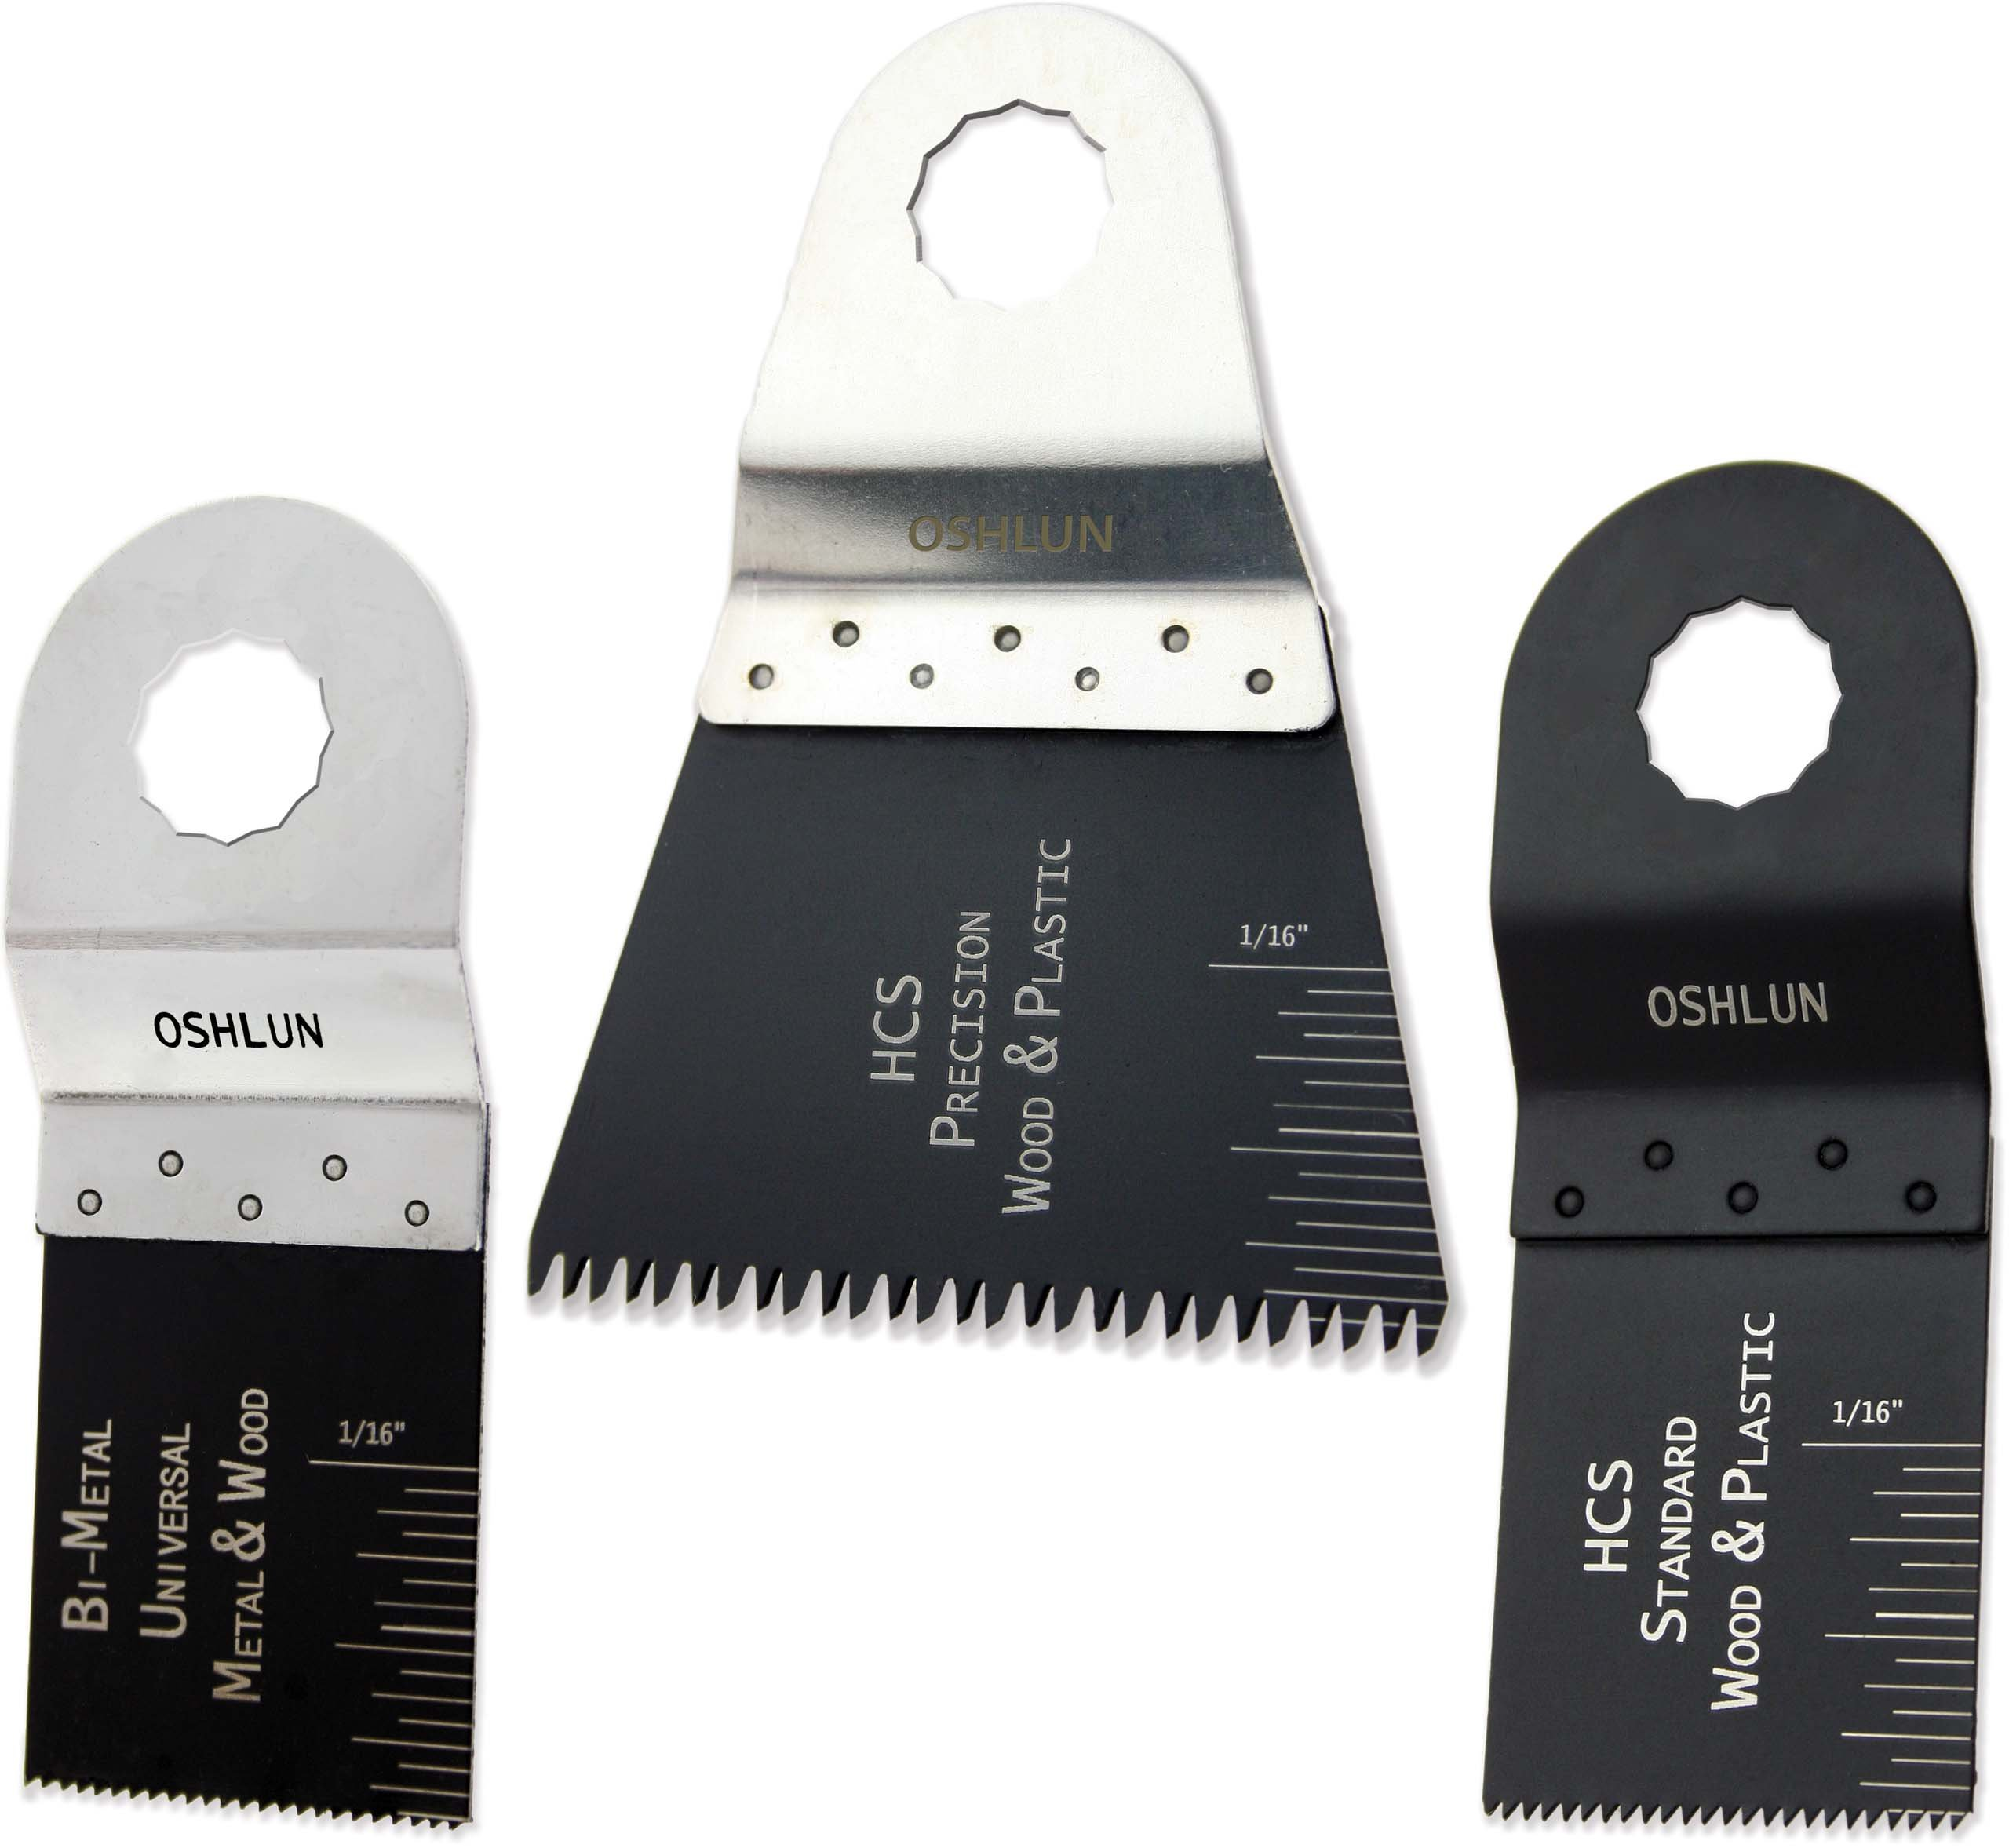 Oshlun MMR-9903 Oscillating Tool Blade Combo for Rockwell SoniCrafter, 3-Pack